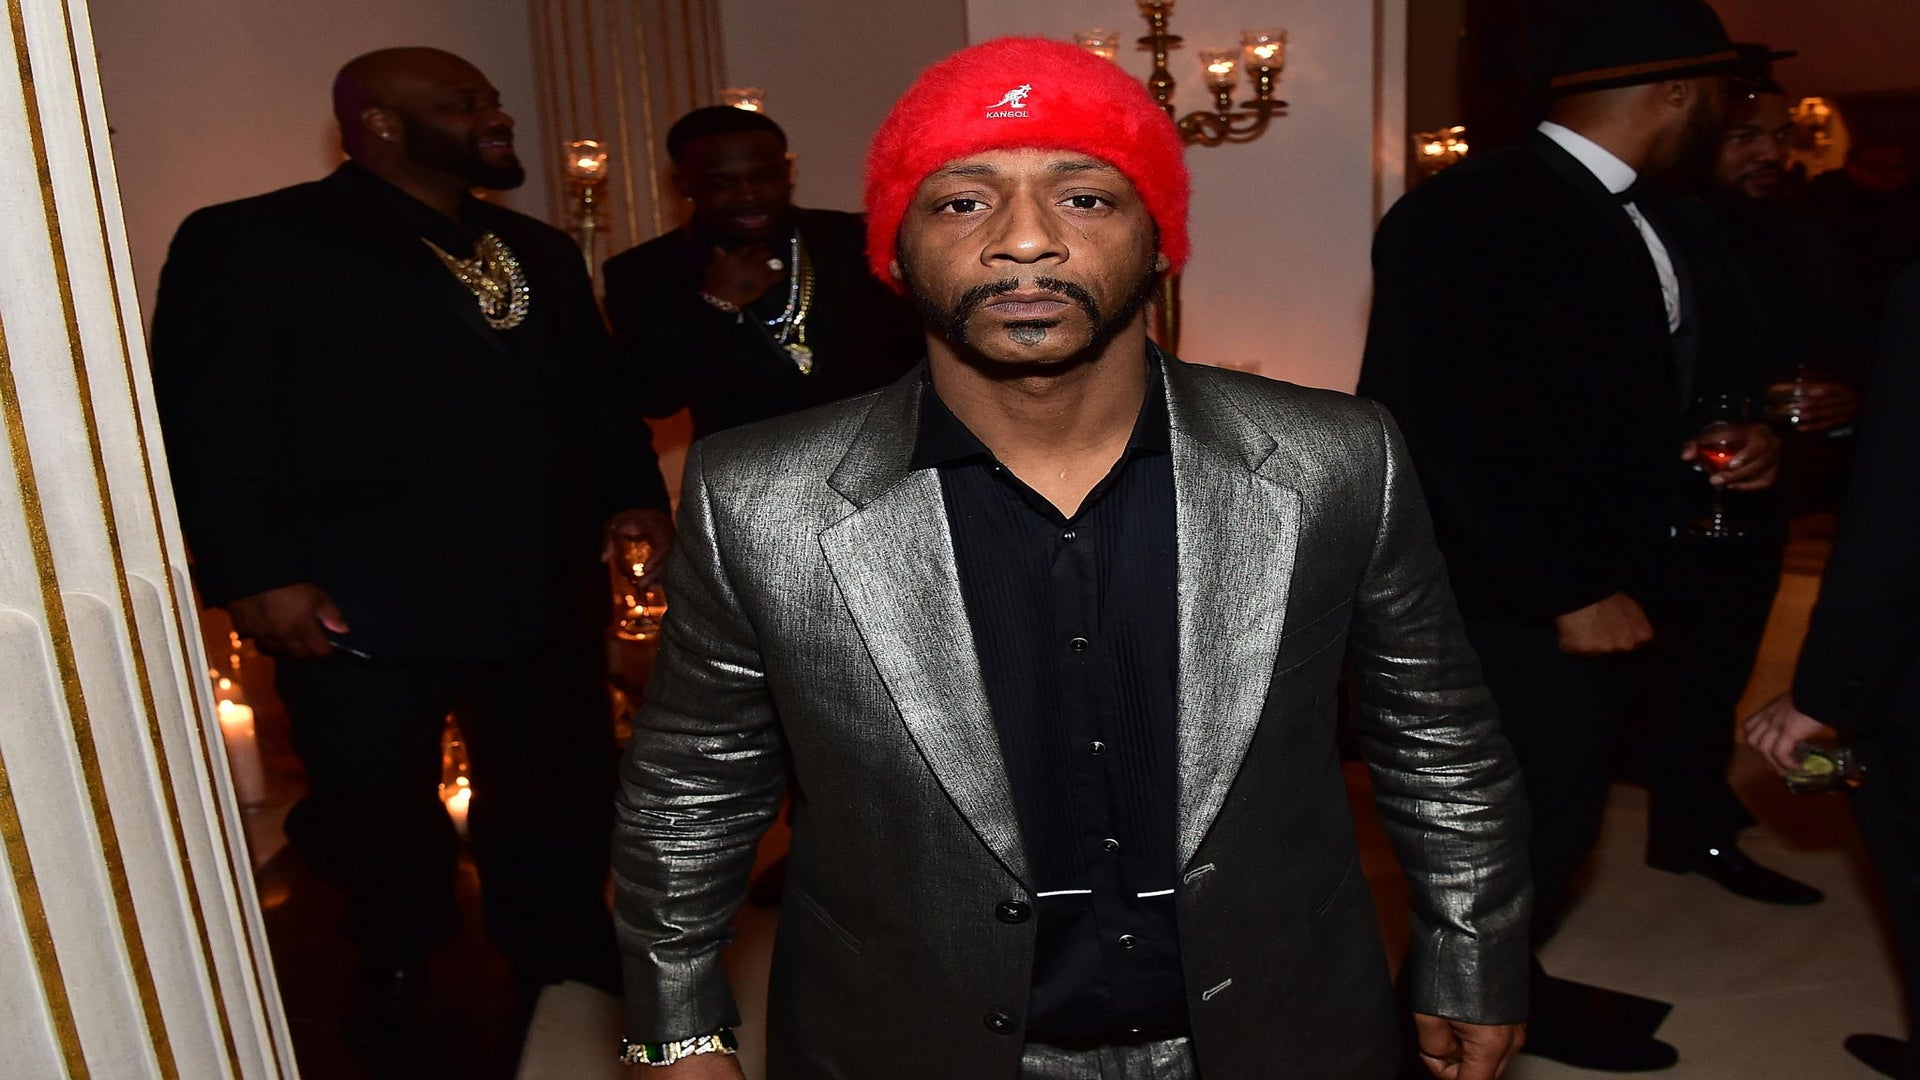 The Teen Who Allegedly Punched Katt Williams Speaks Out